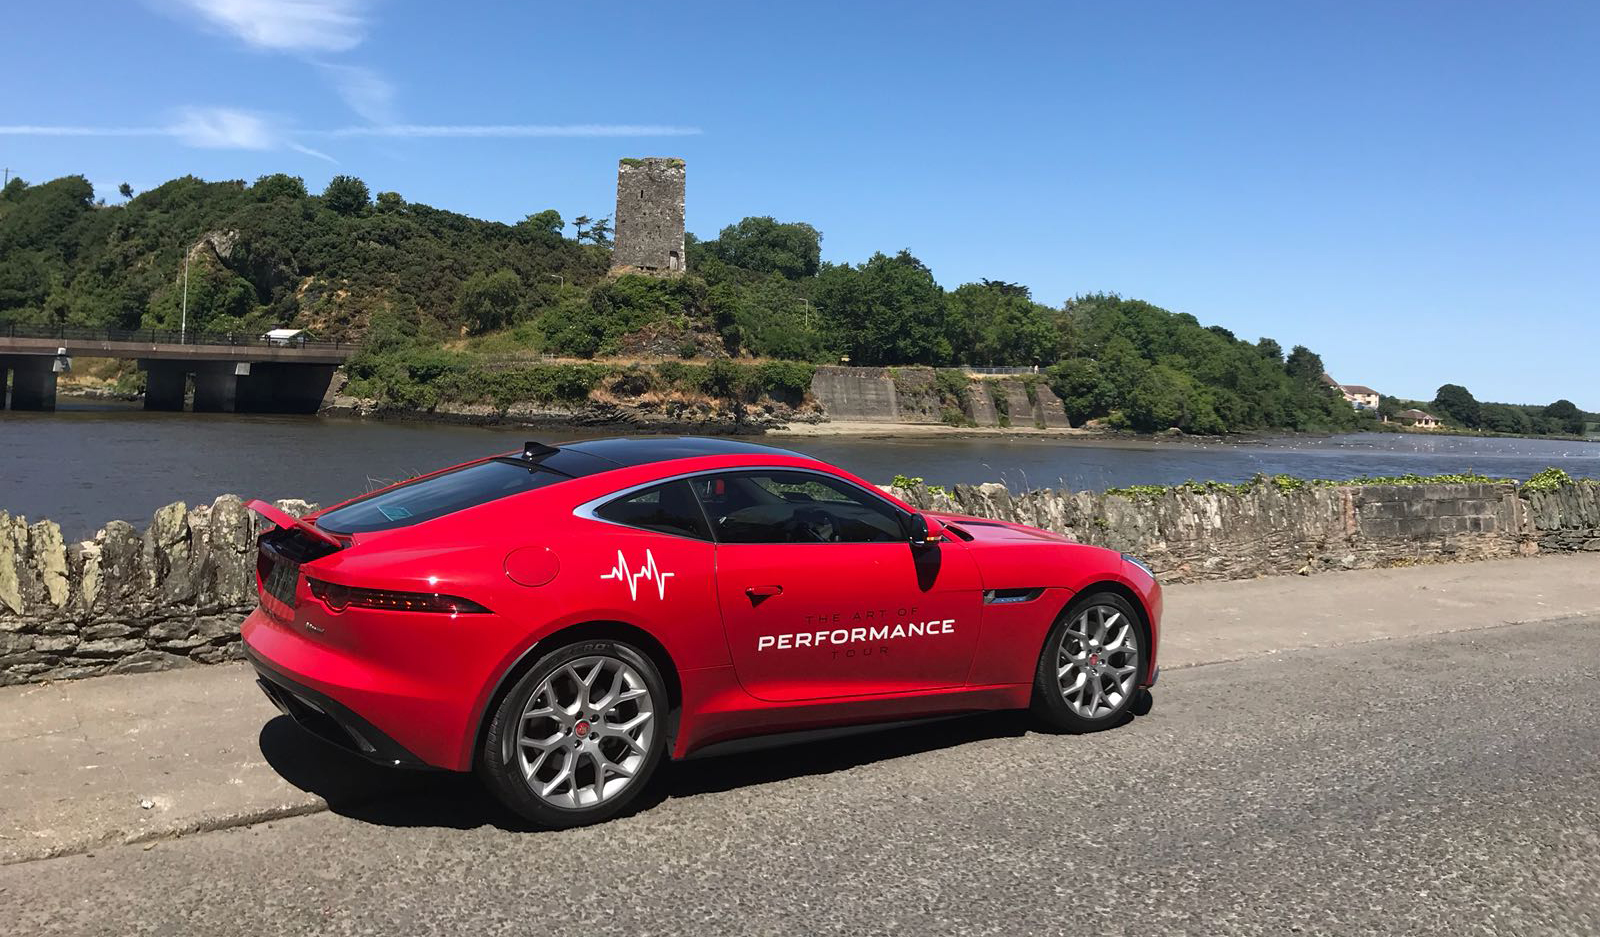 Orangeworks Teams with Jaguar Ireland for the Art of Performance Tour 2018